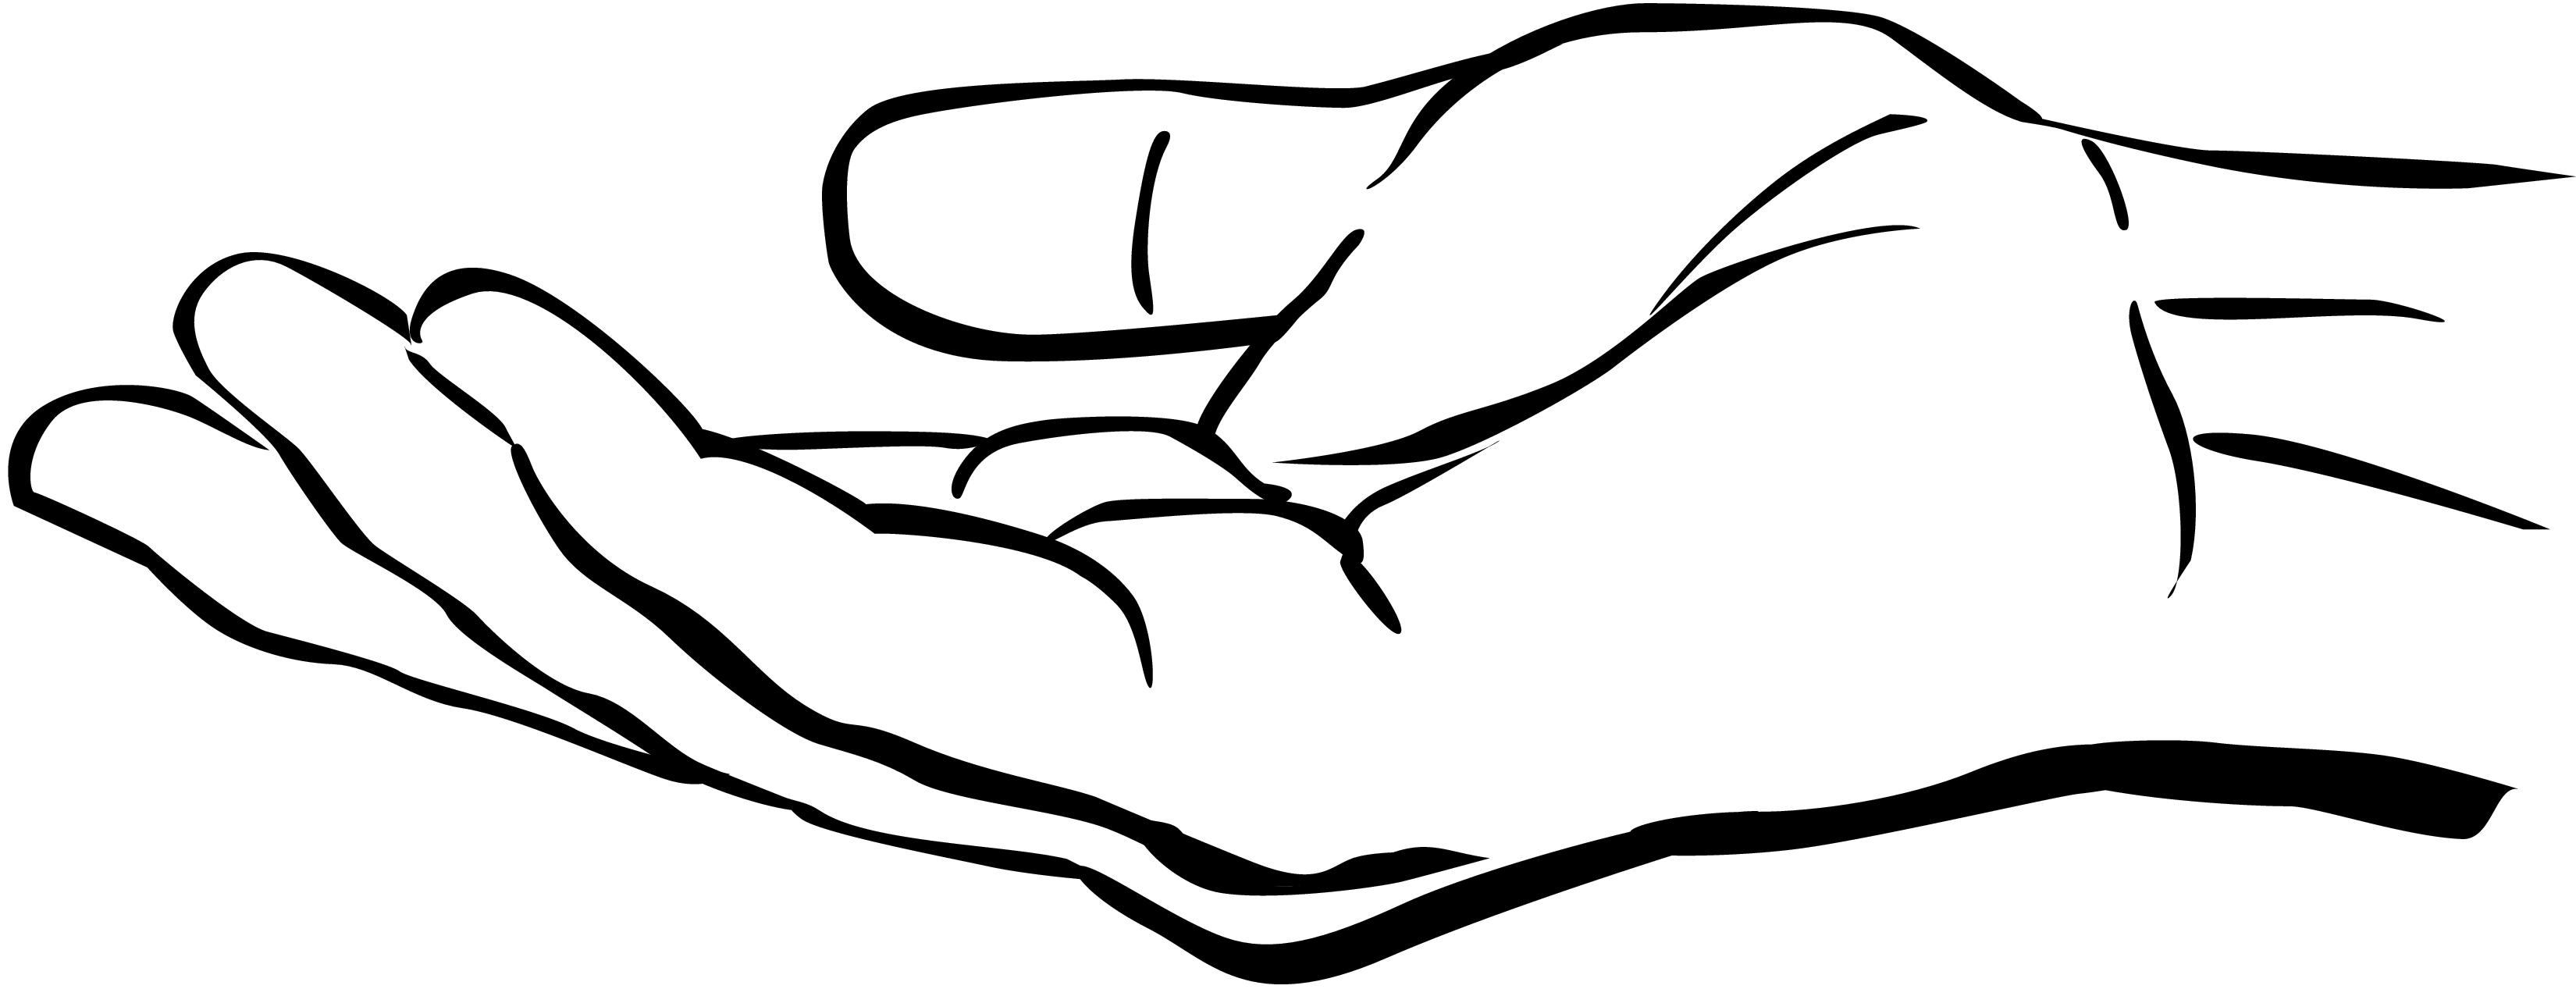 3300x1267 Top 10 Praying Hands Open Clipart Design